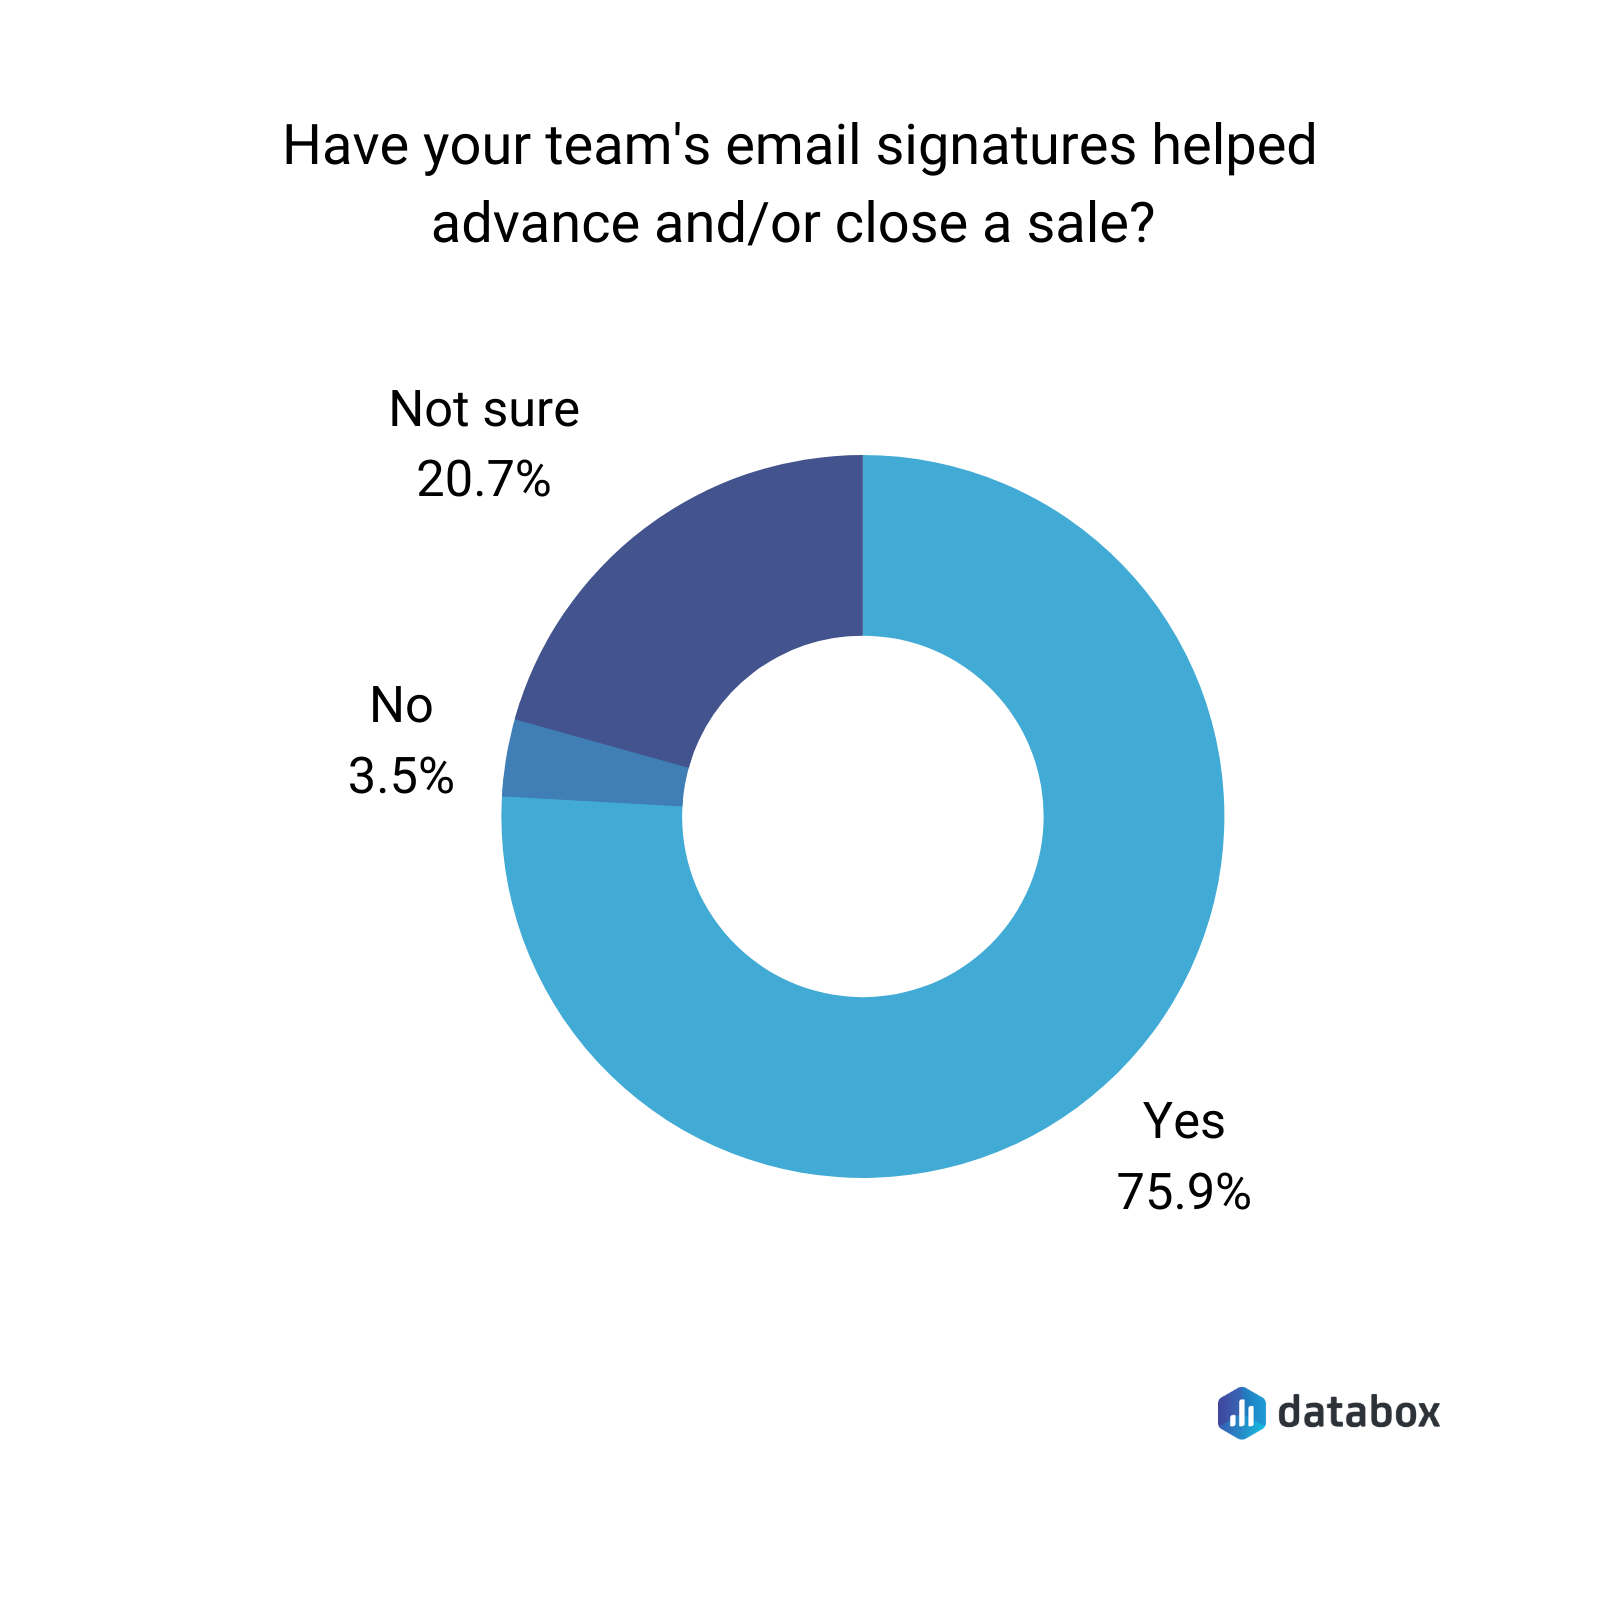 have your team's email signature helped advance or close a sale?